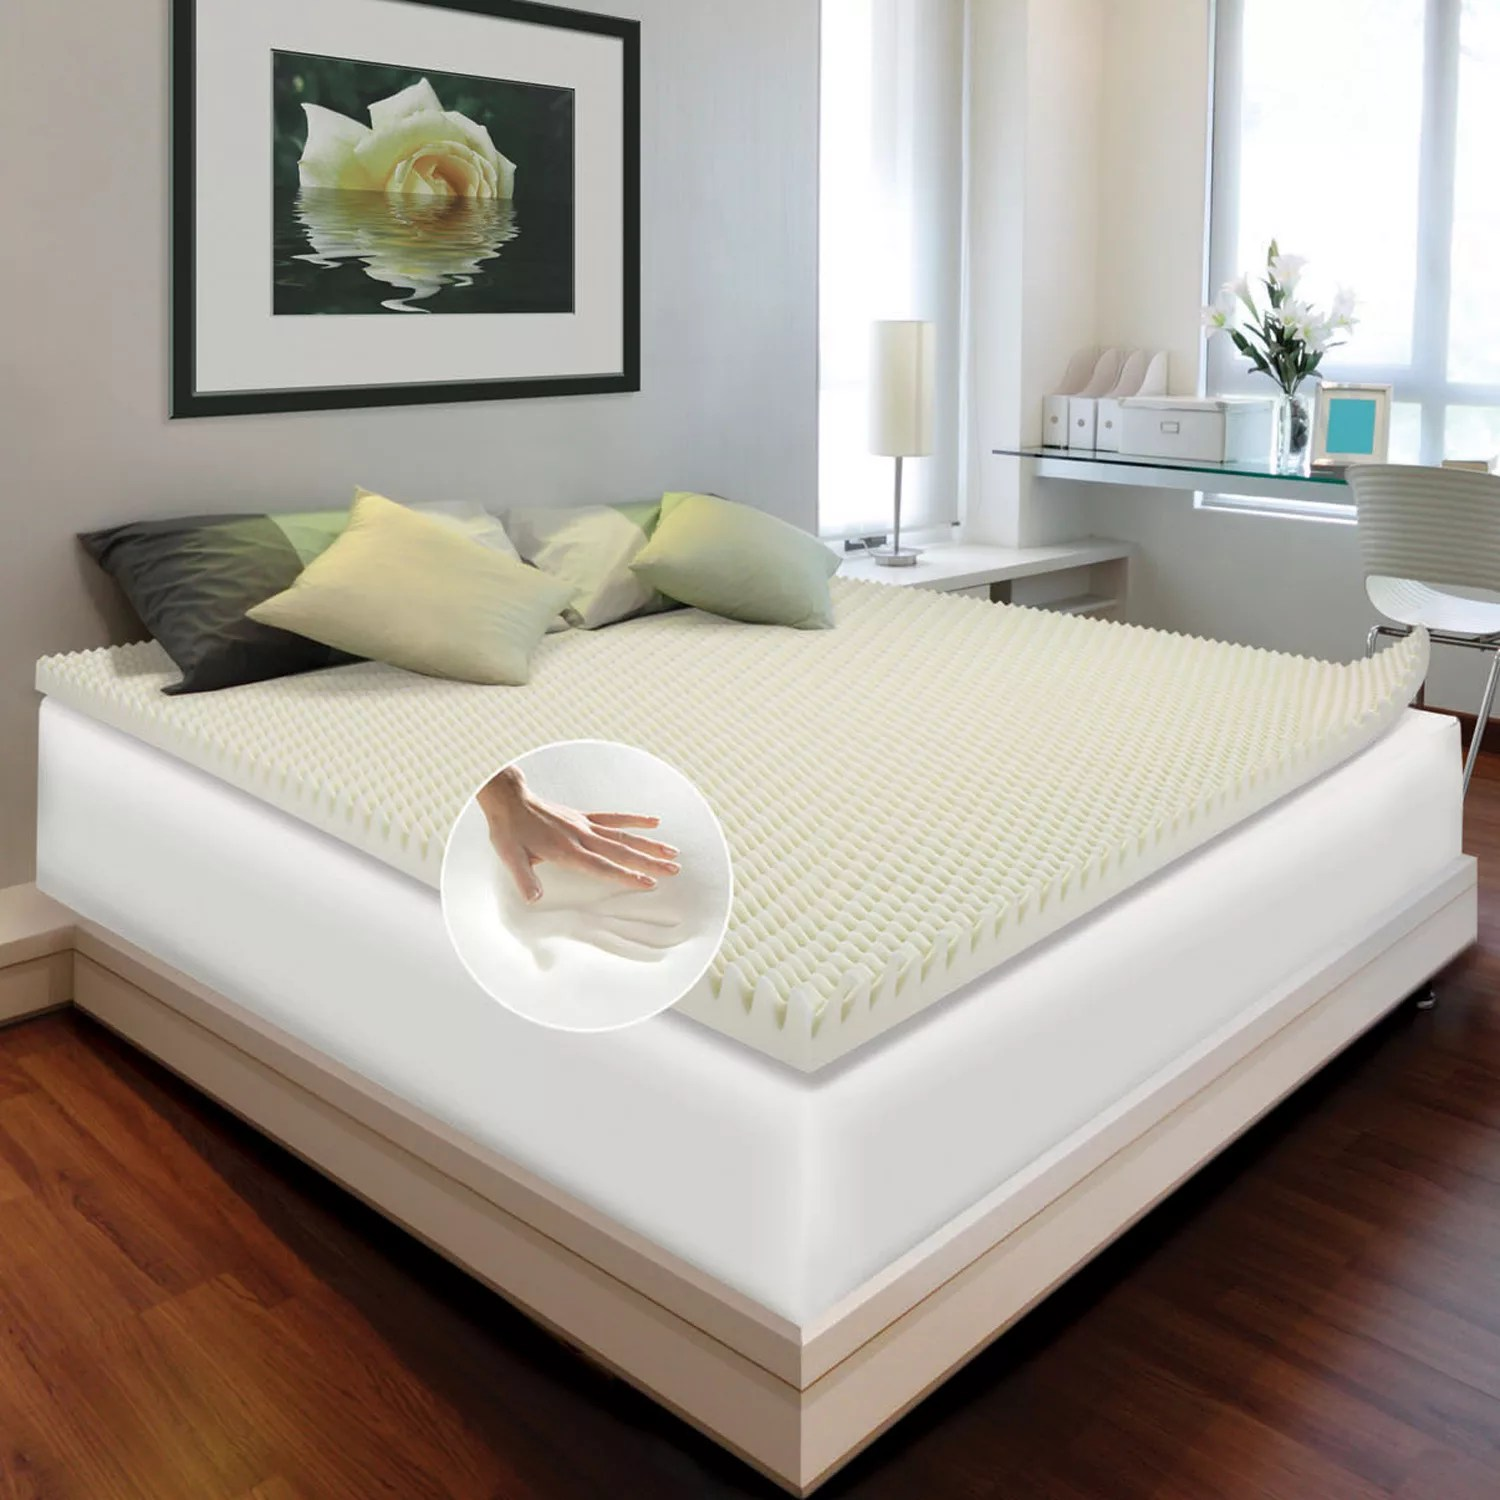 Memory Foam Mattress Toppers Enhance Comfort Loft 4 Inch Memory Foam Mattress Topper